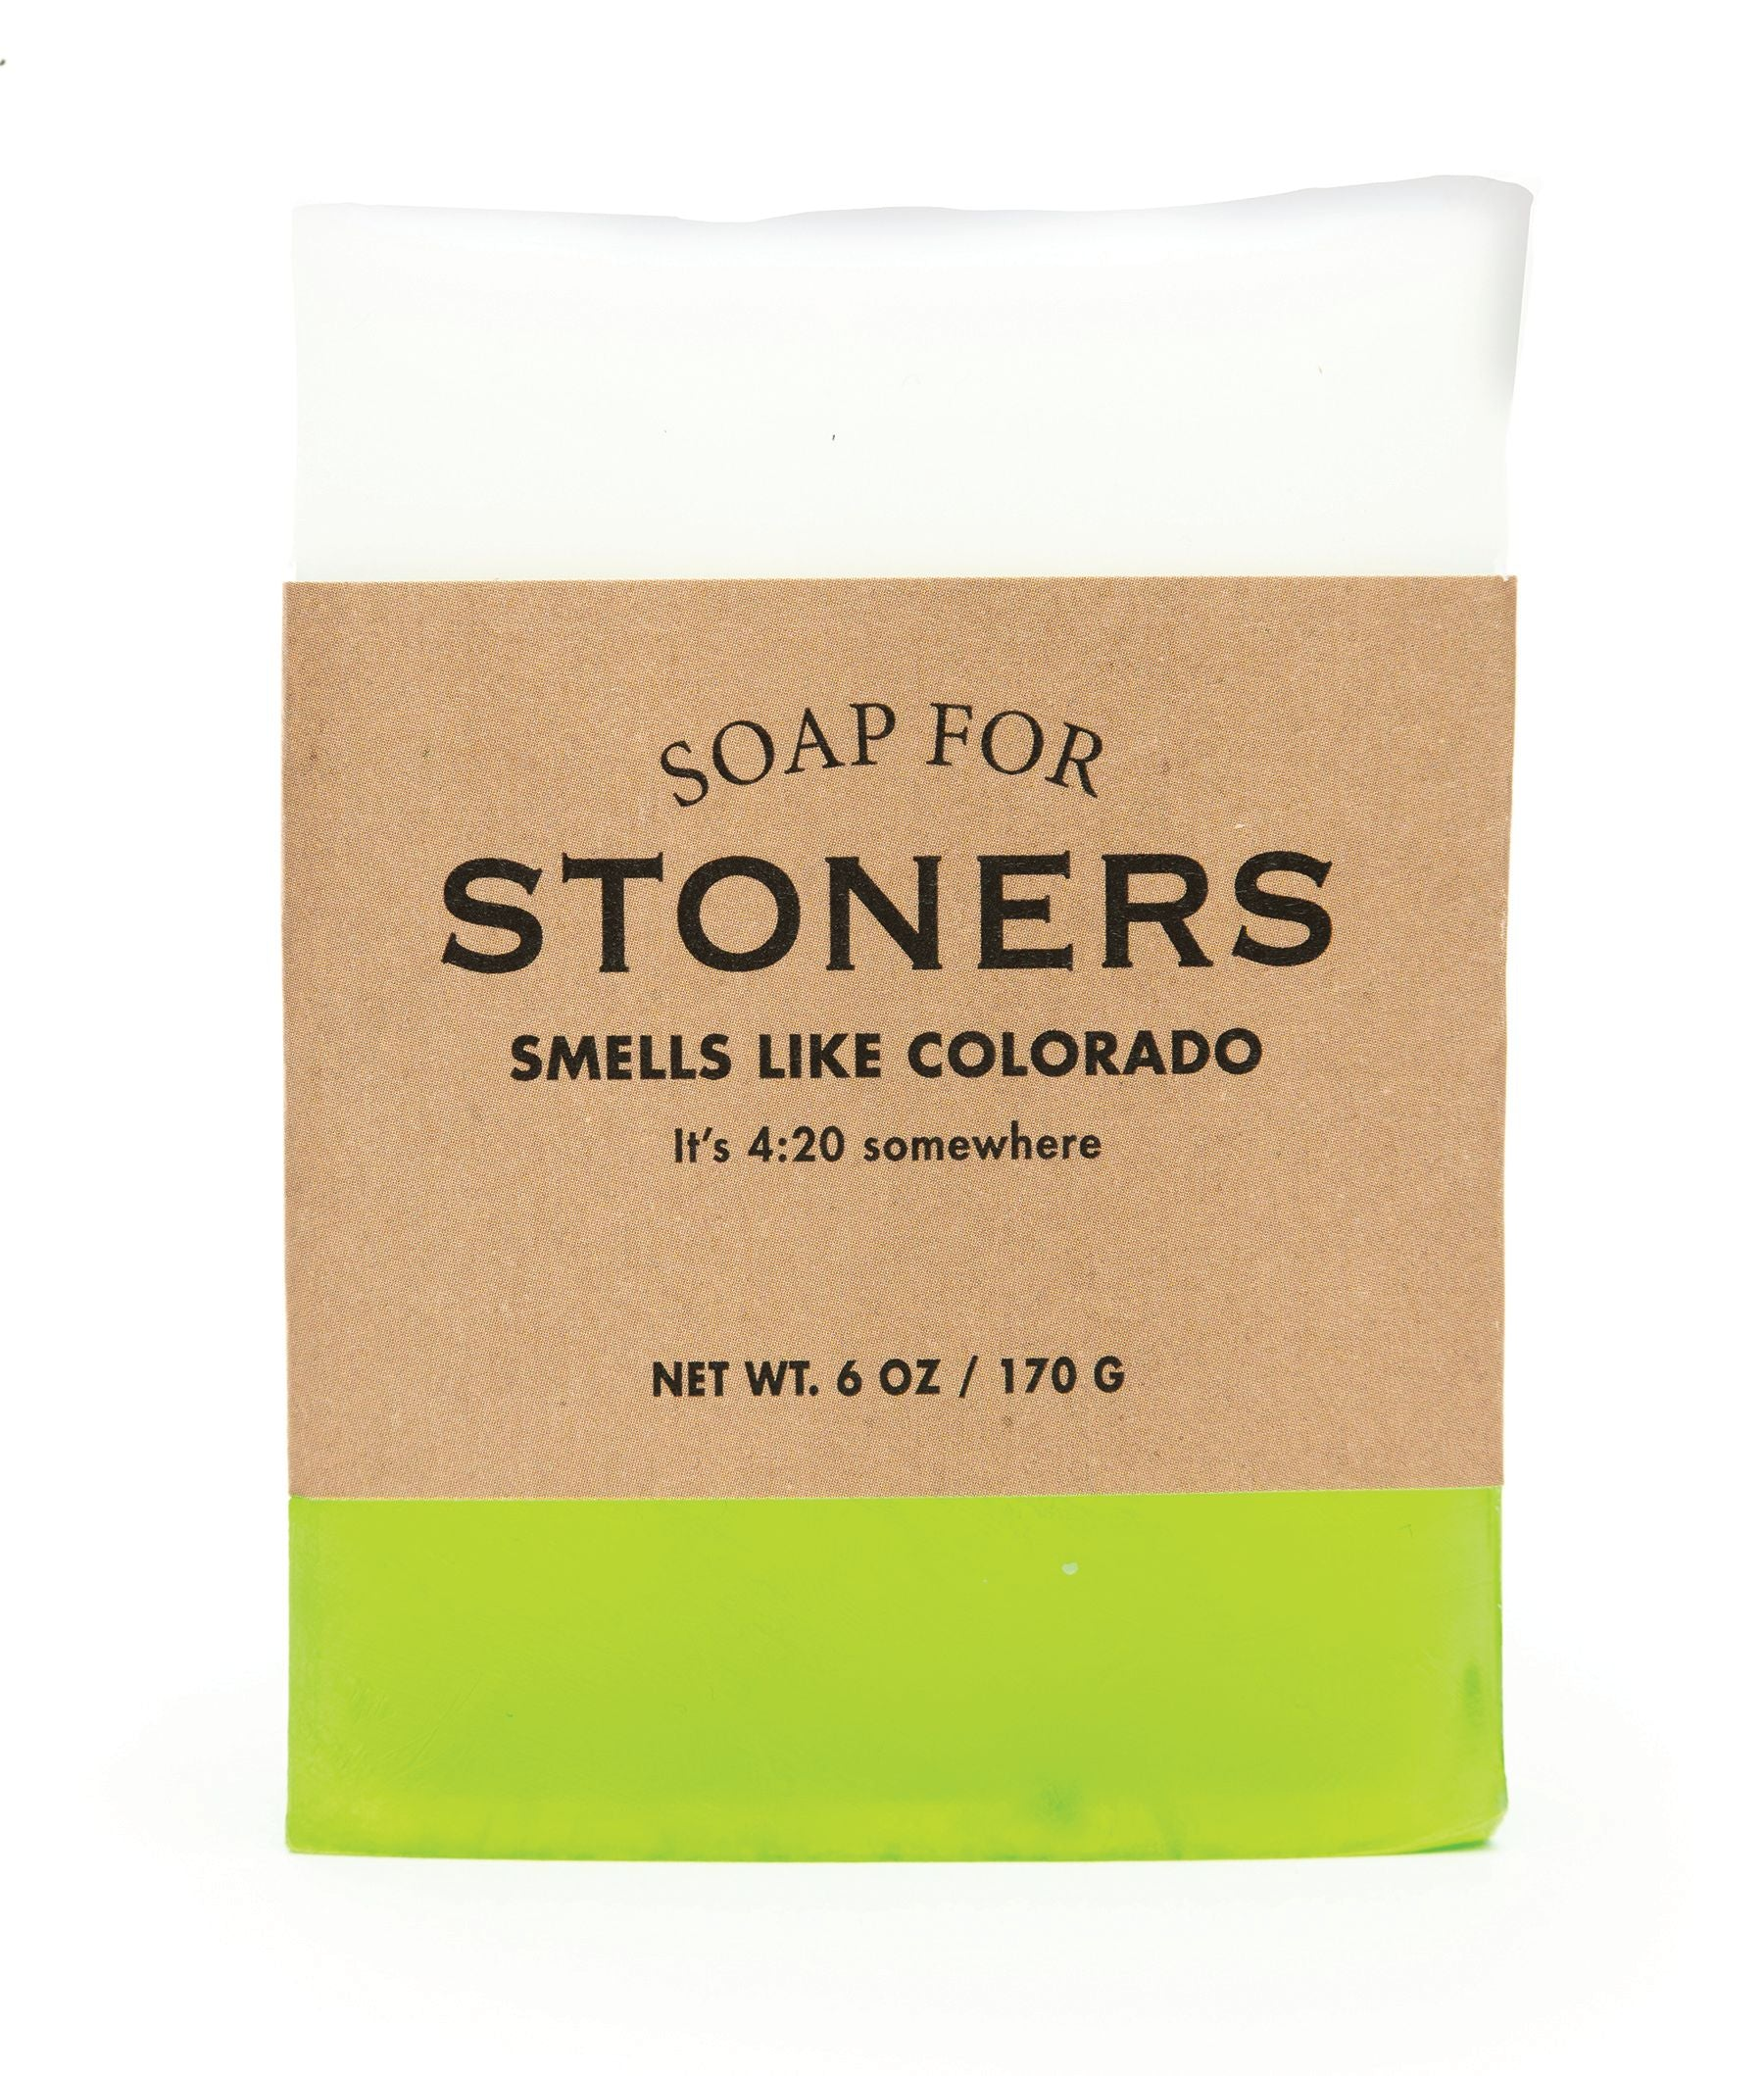 Soap for Stoners - Heart of the Home PA